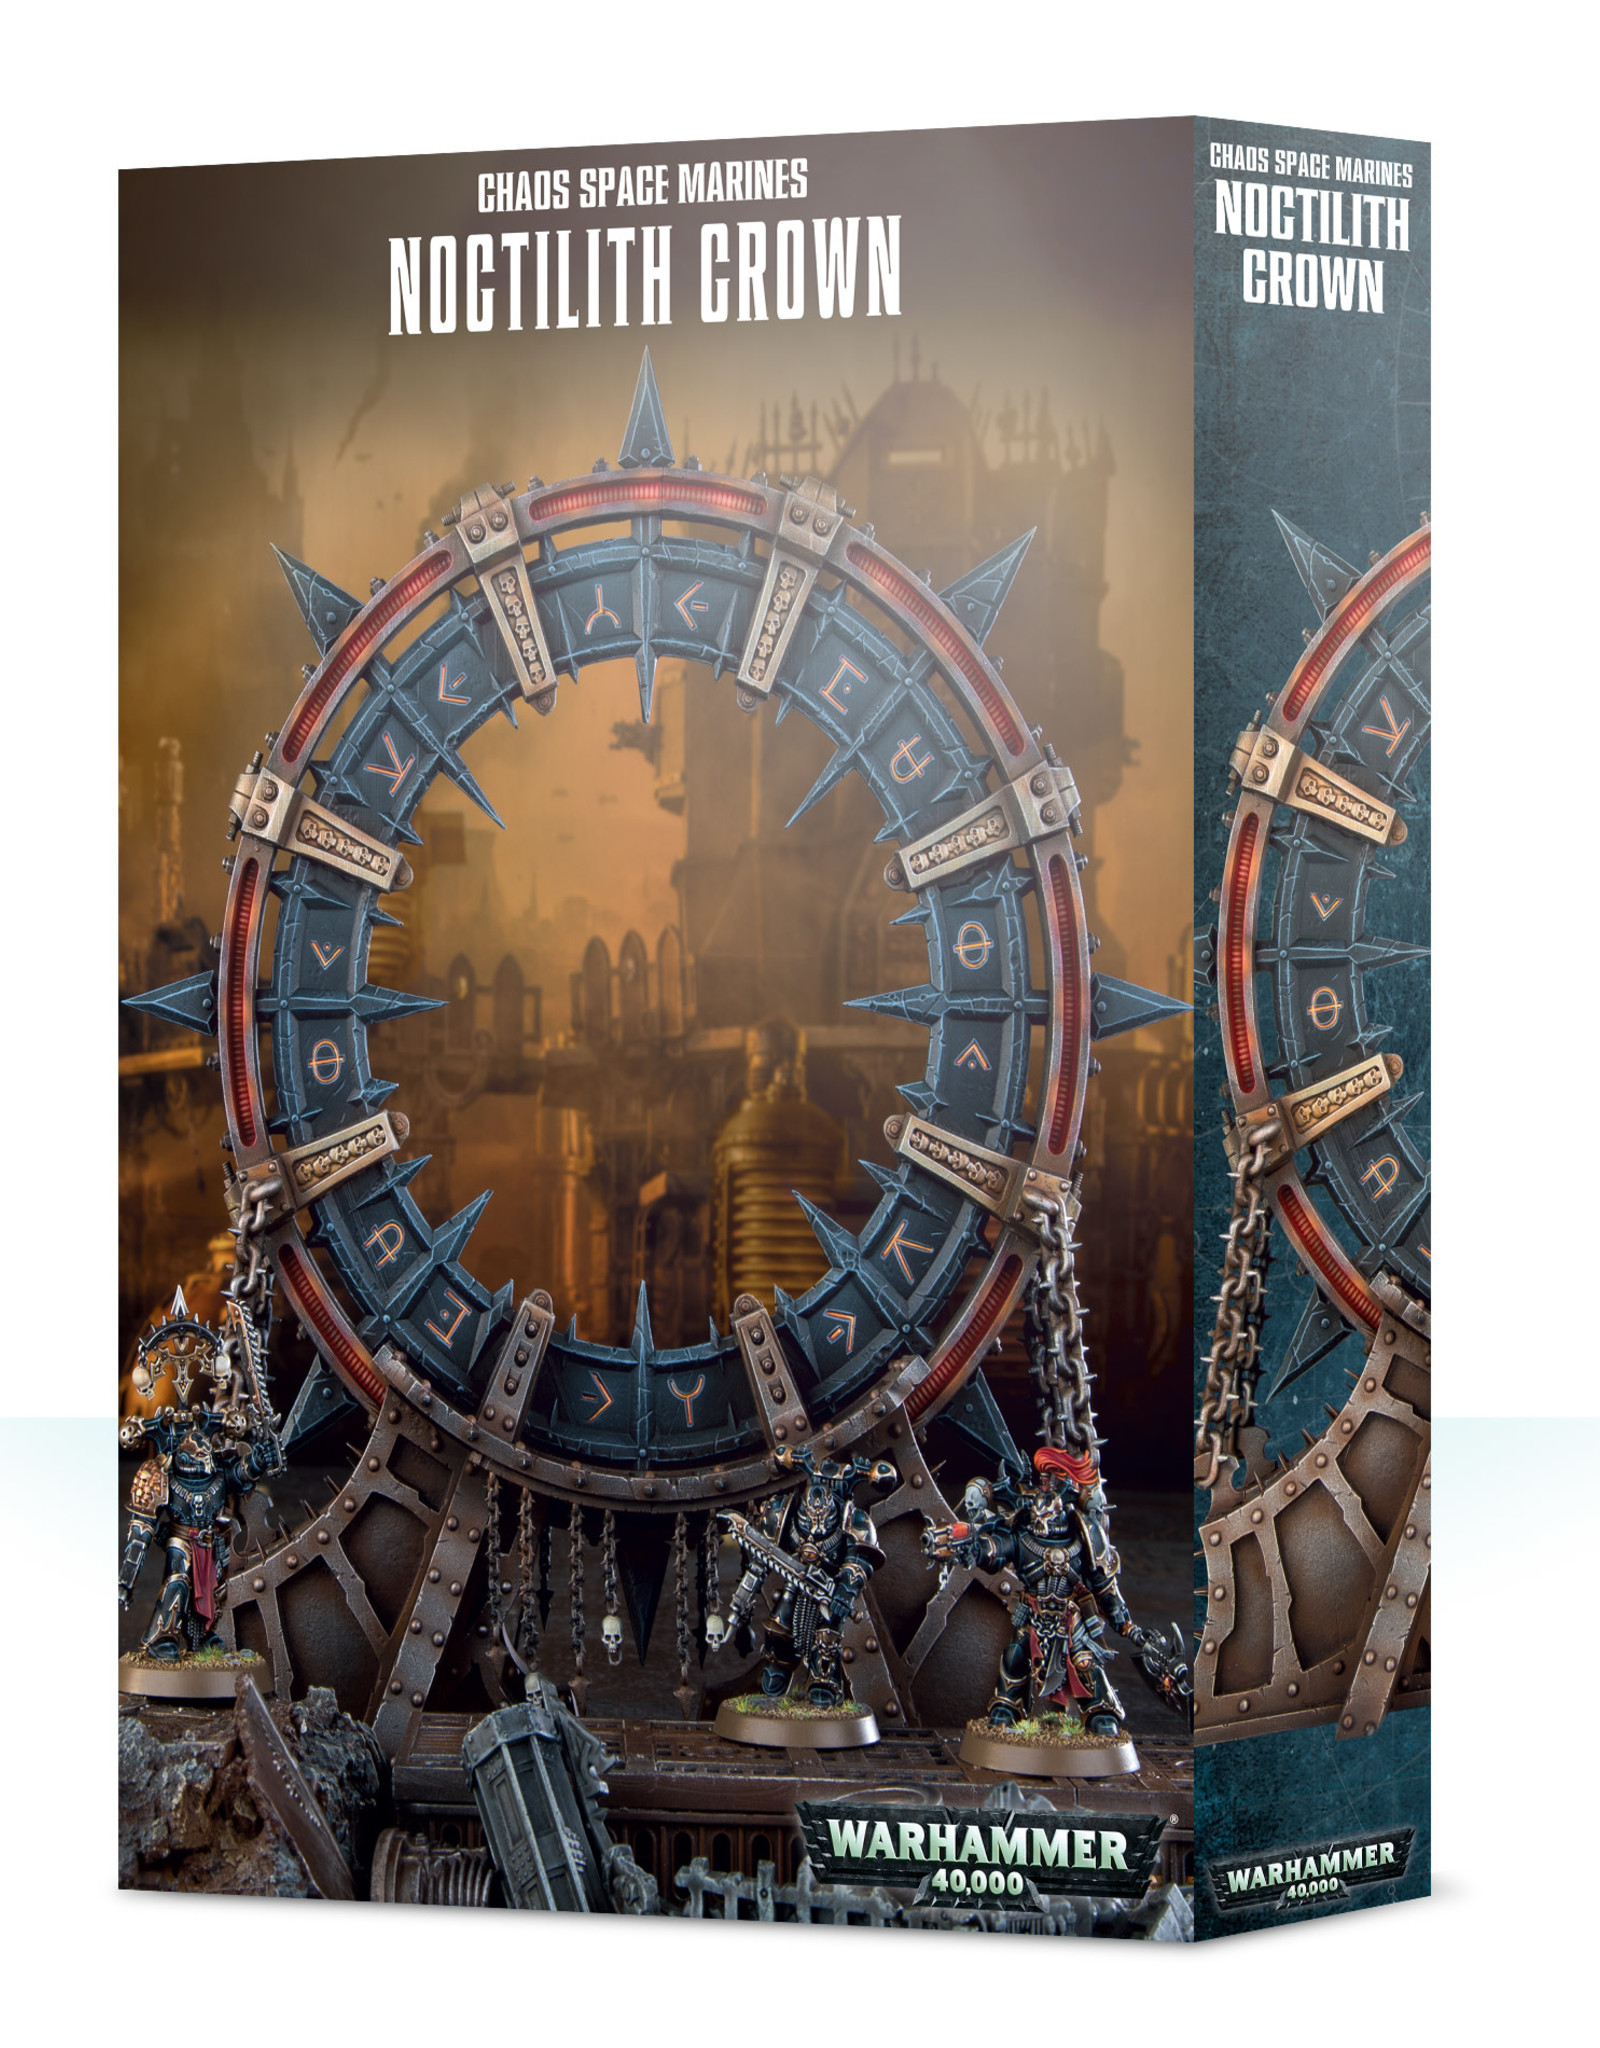 Warhammer 40K Chaos Space Marines Noctilith Crown